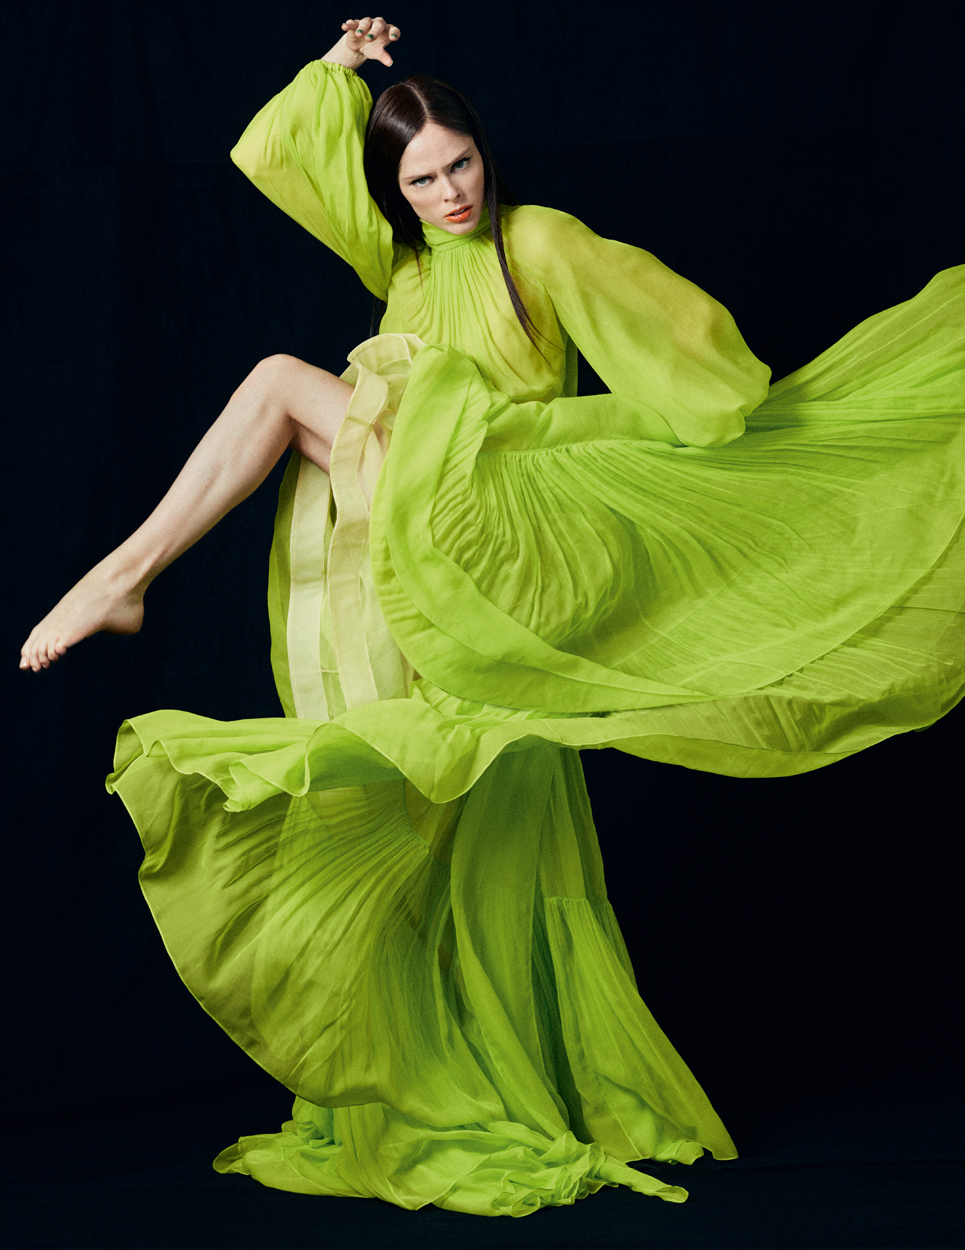 Fashion Photographer Michael Schwartz: model Coco Rocha for Vanity Fair Italy magazine